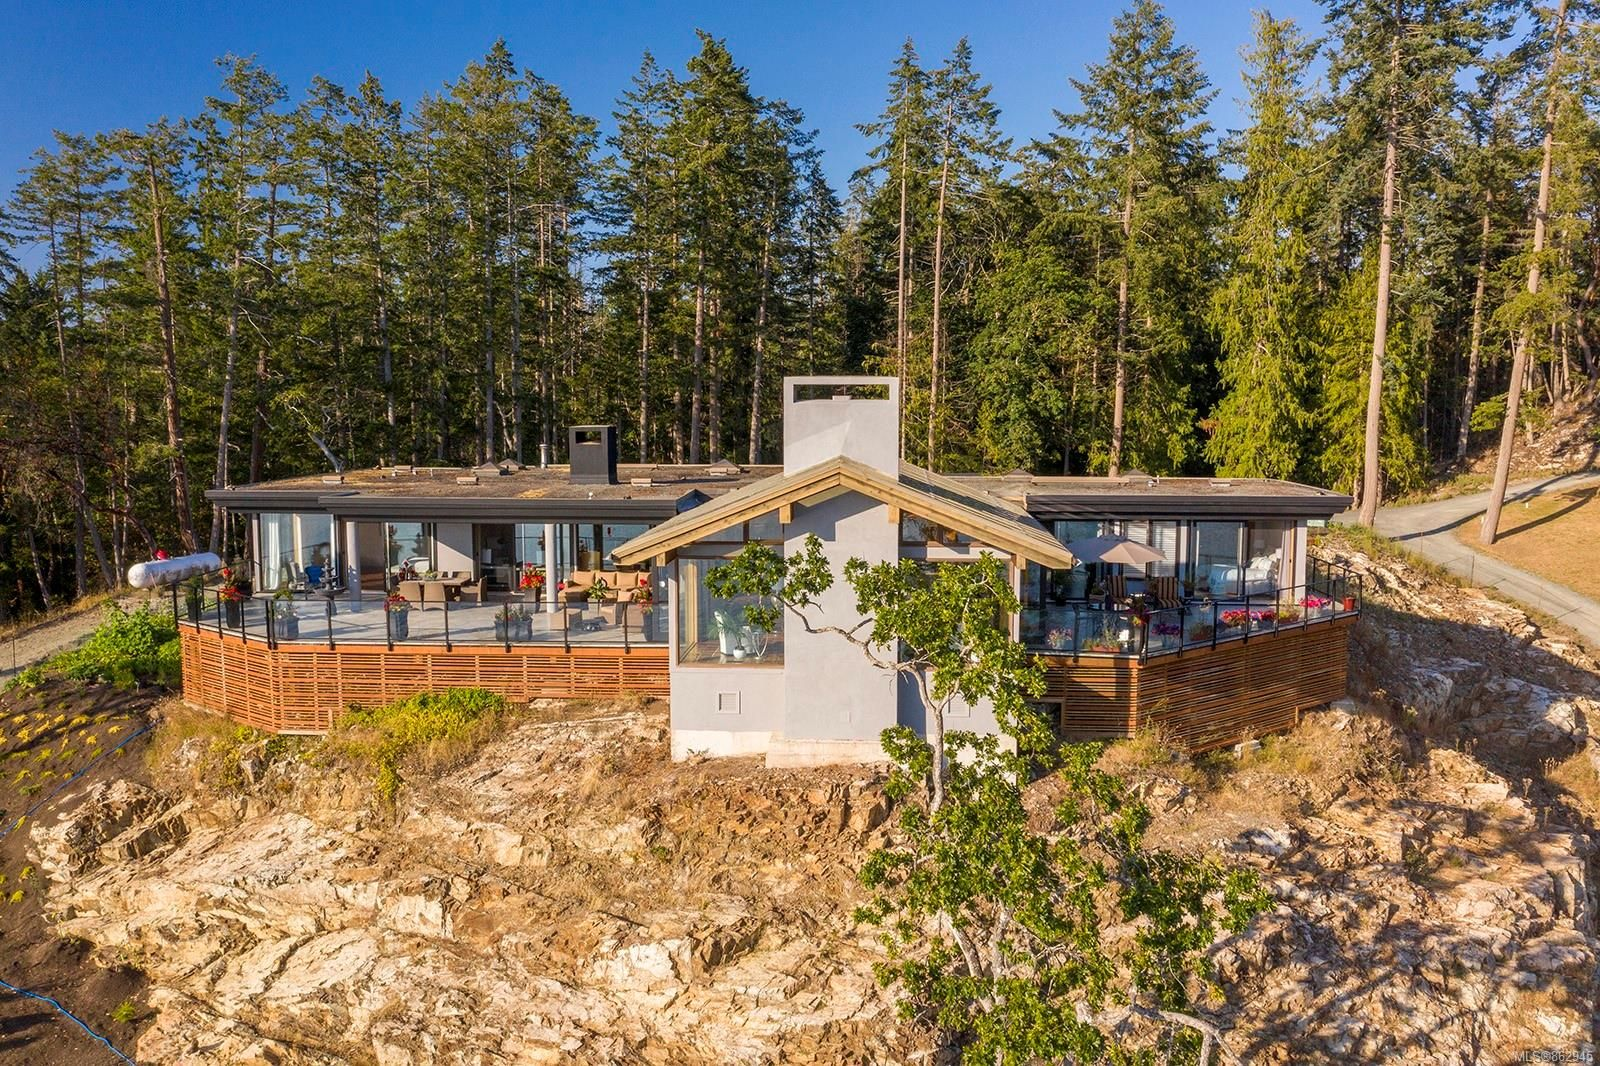 Photo 21: Photos: 1675 Claudet Rd in : PQ Nanoose House for sale (Parksville/Qualicum)  : MLS®# 862945